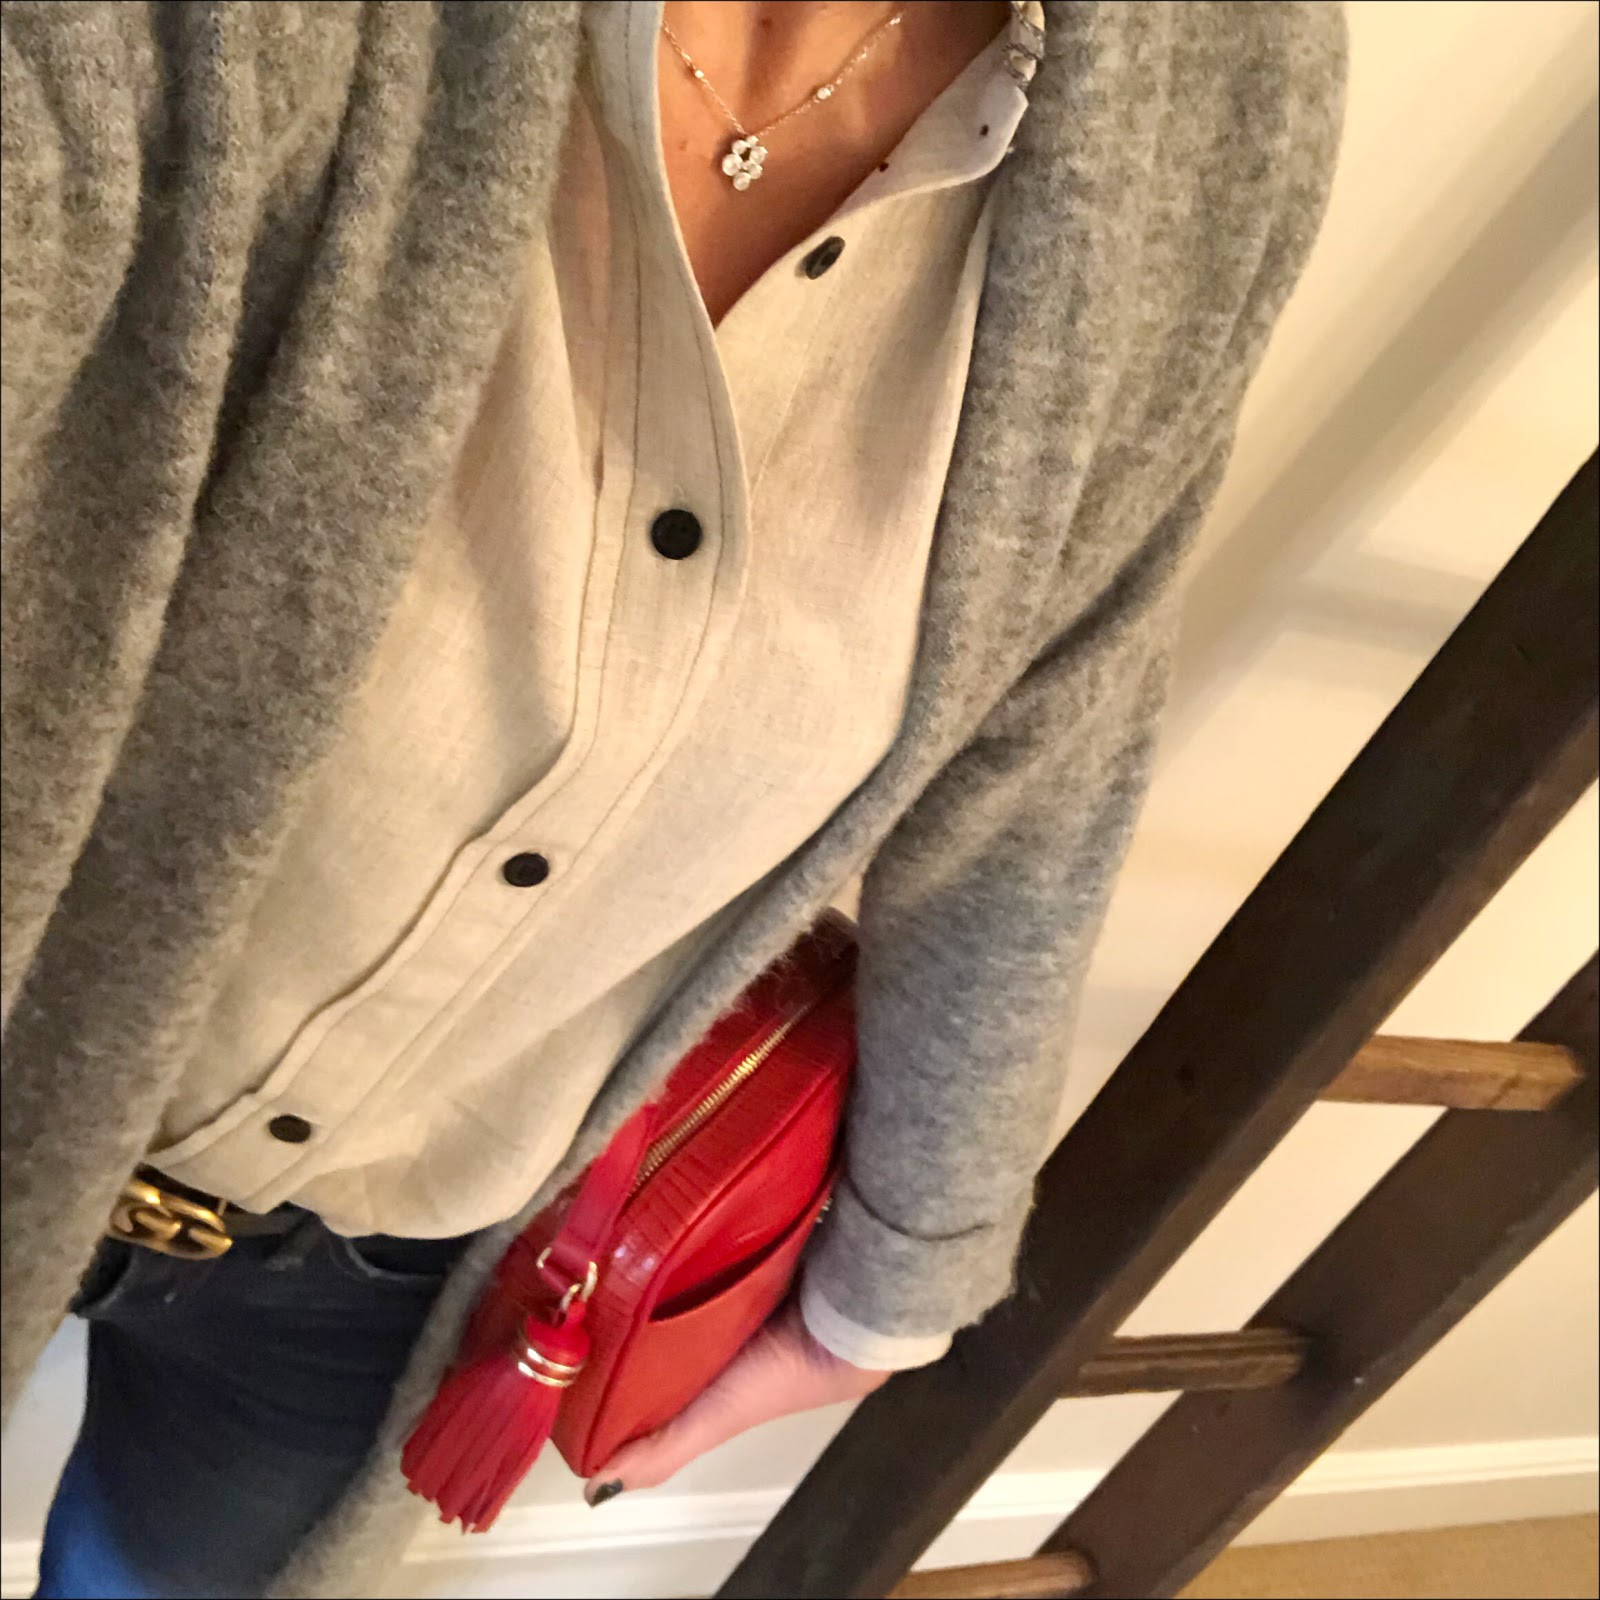 my midlife fashion, isabel marant etoile ruffle blouse, american vintage oversized ruffle blouse, gucci double gg 2 cm leather logo belt, uterque mock croc cross body bag, j crew 8 inch toothpick skinny jeans, j crew pointed tassel flat ballet pumps